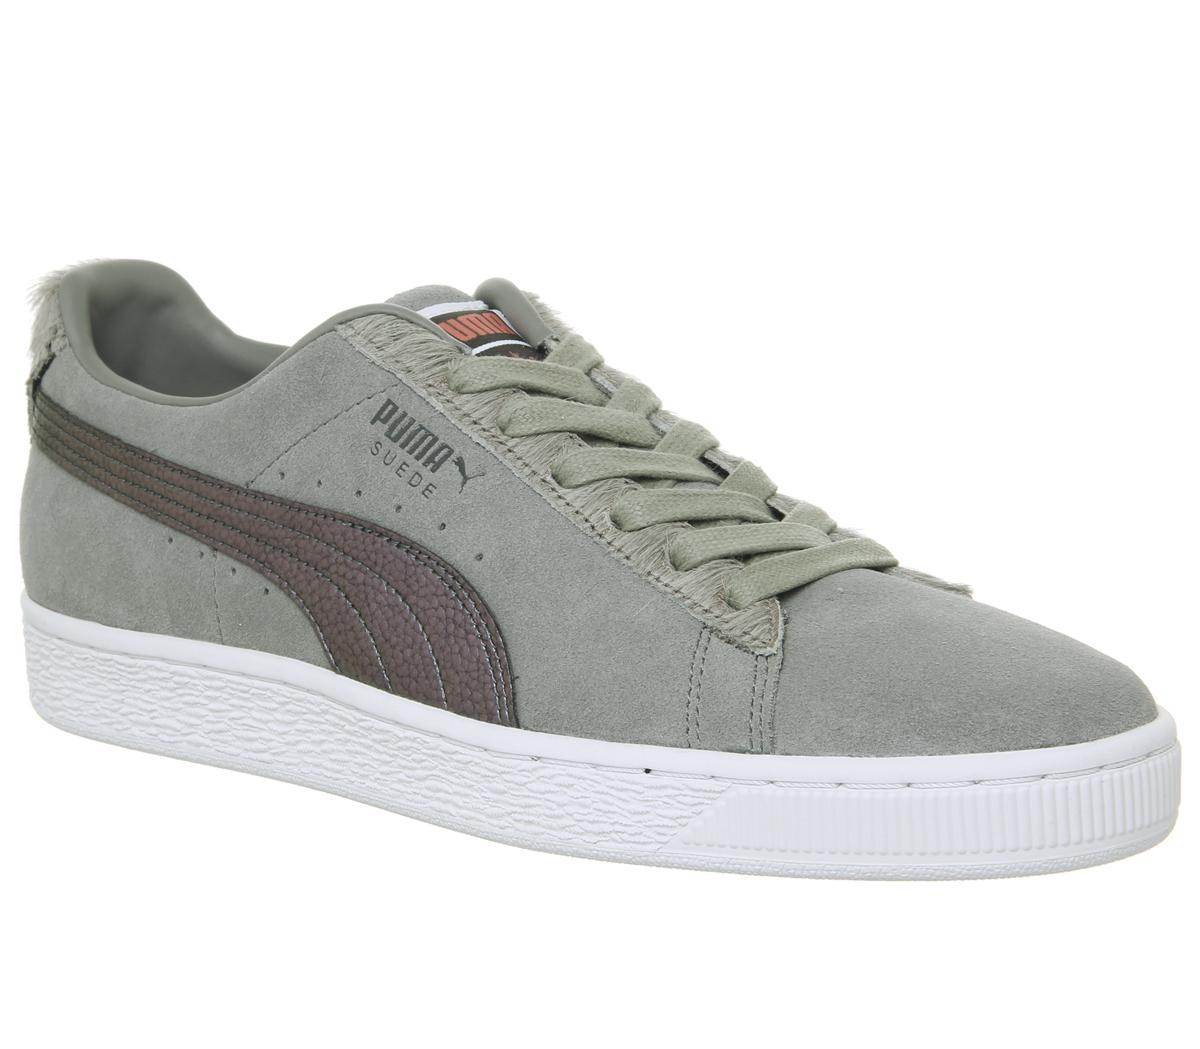 fa29c15c8974 Puma Suede Classic Trainers in Gray for Men - Lyst